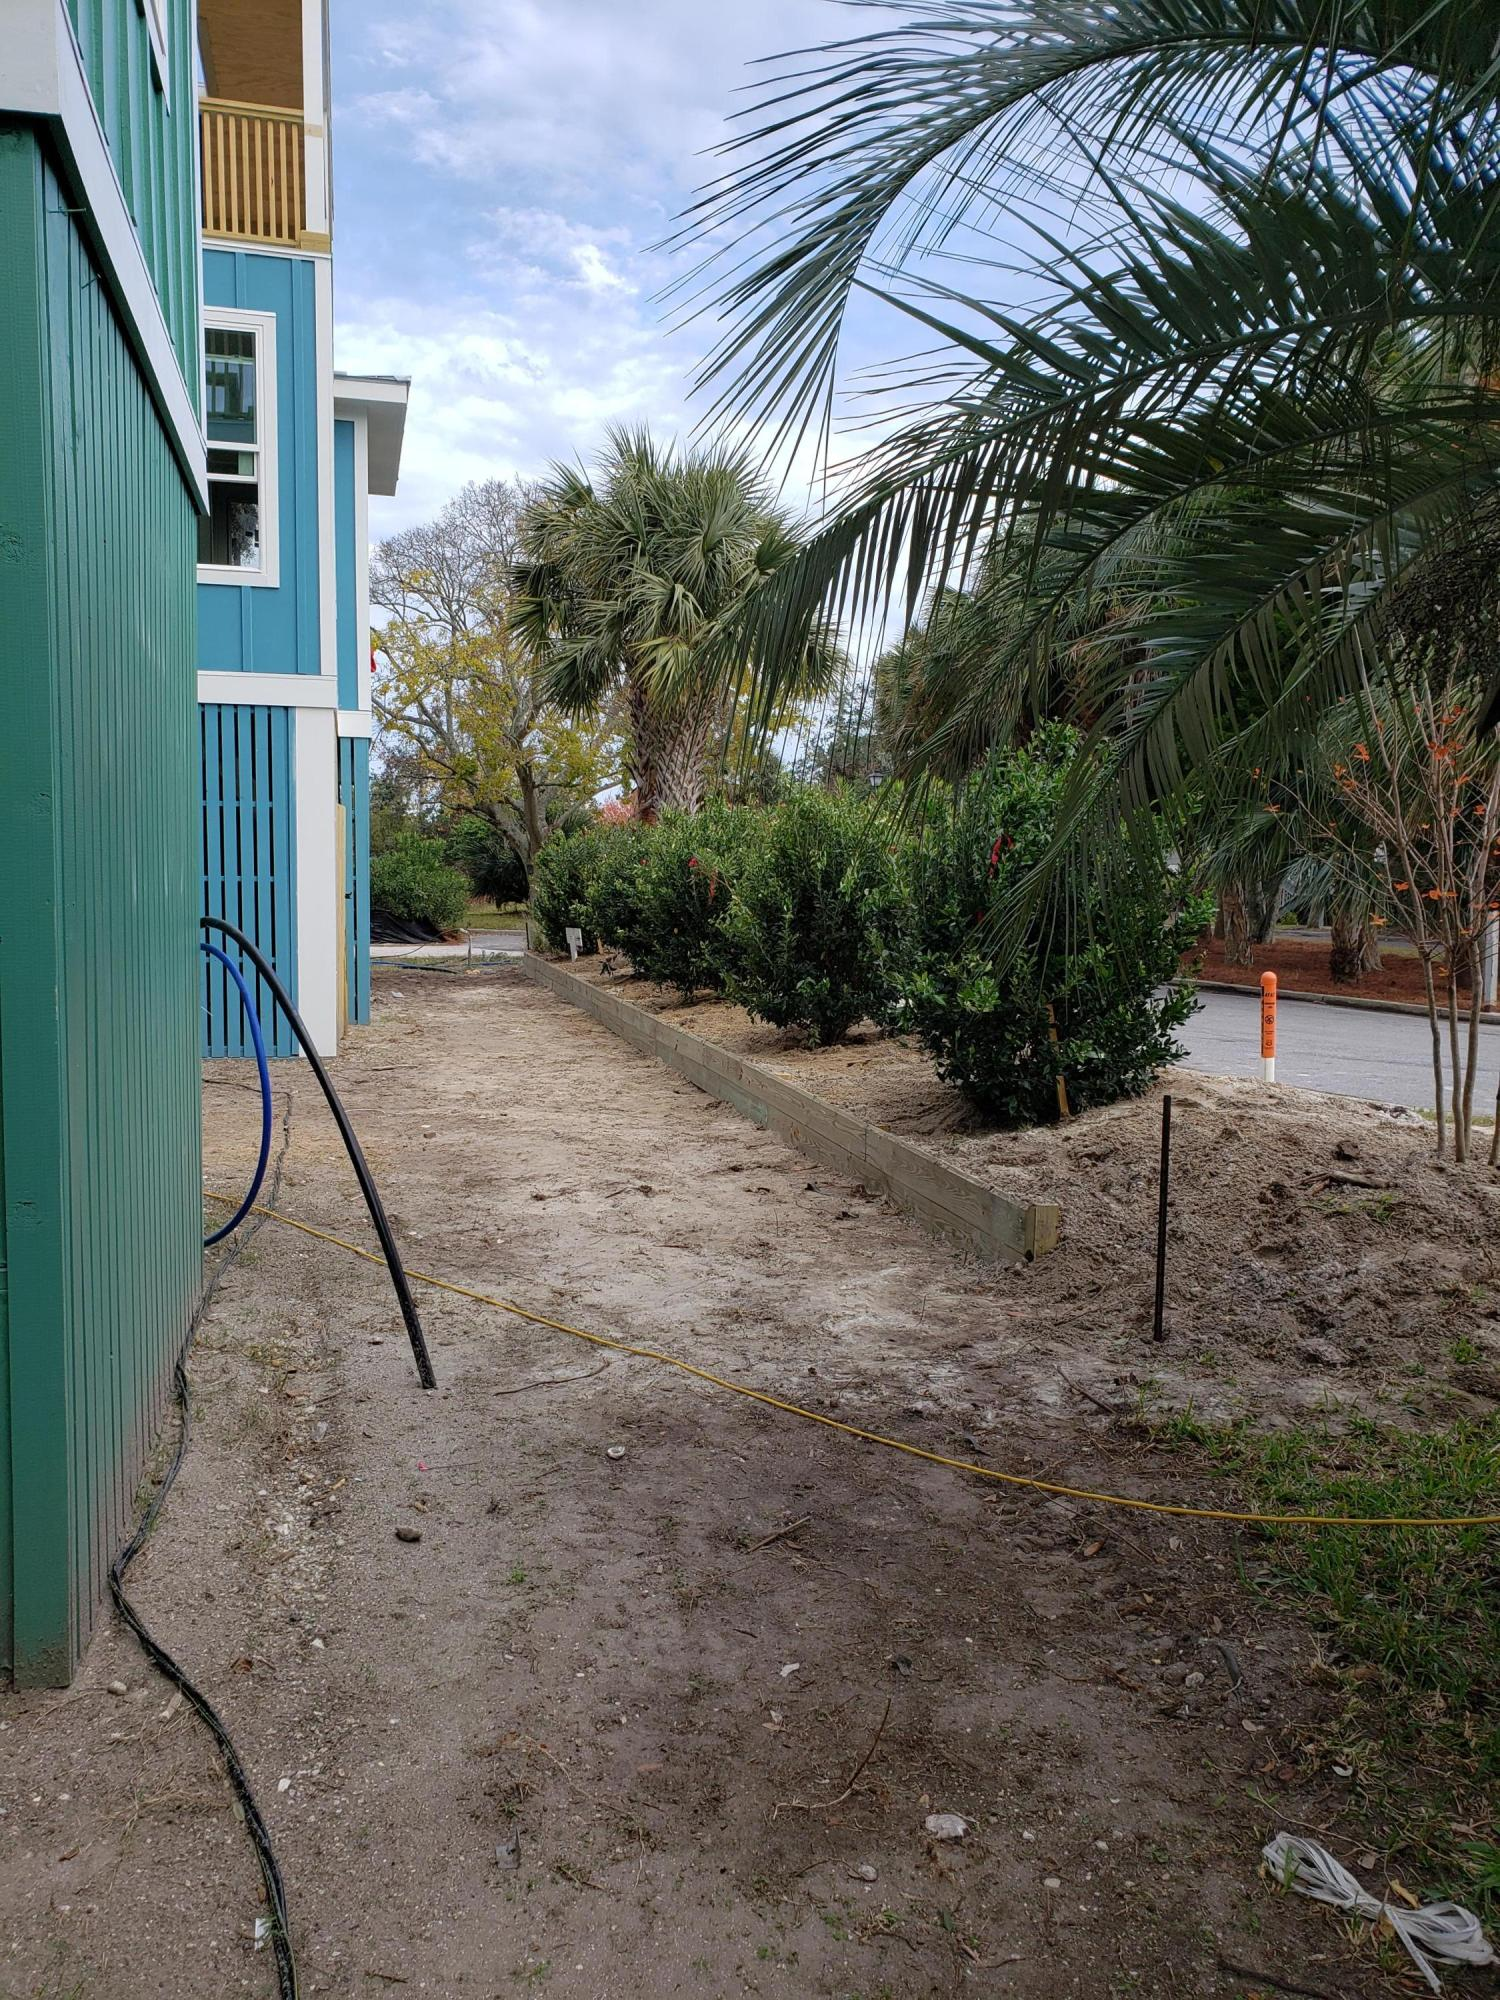 Mariners Cay Homes For Sale - 1004 Mariners Cay, Folly Beach, SC - 46